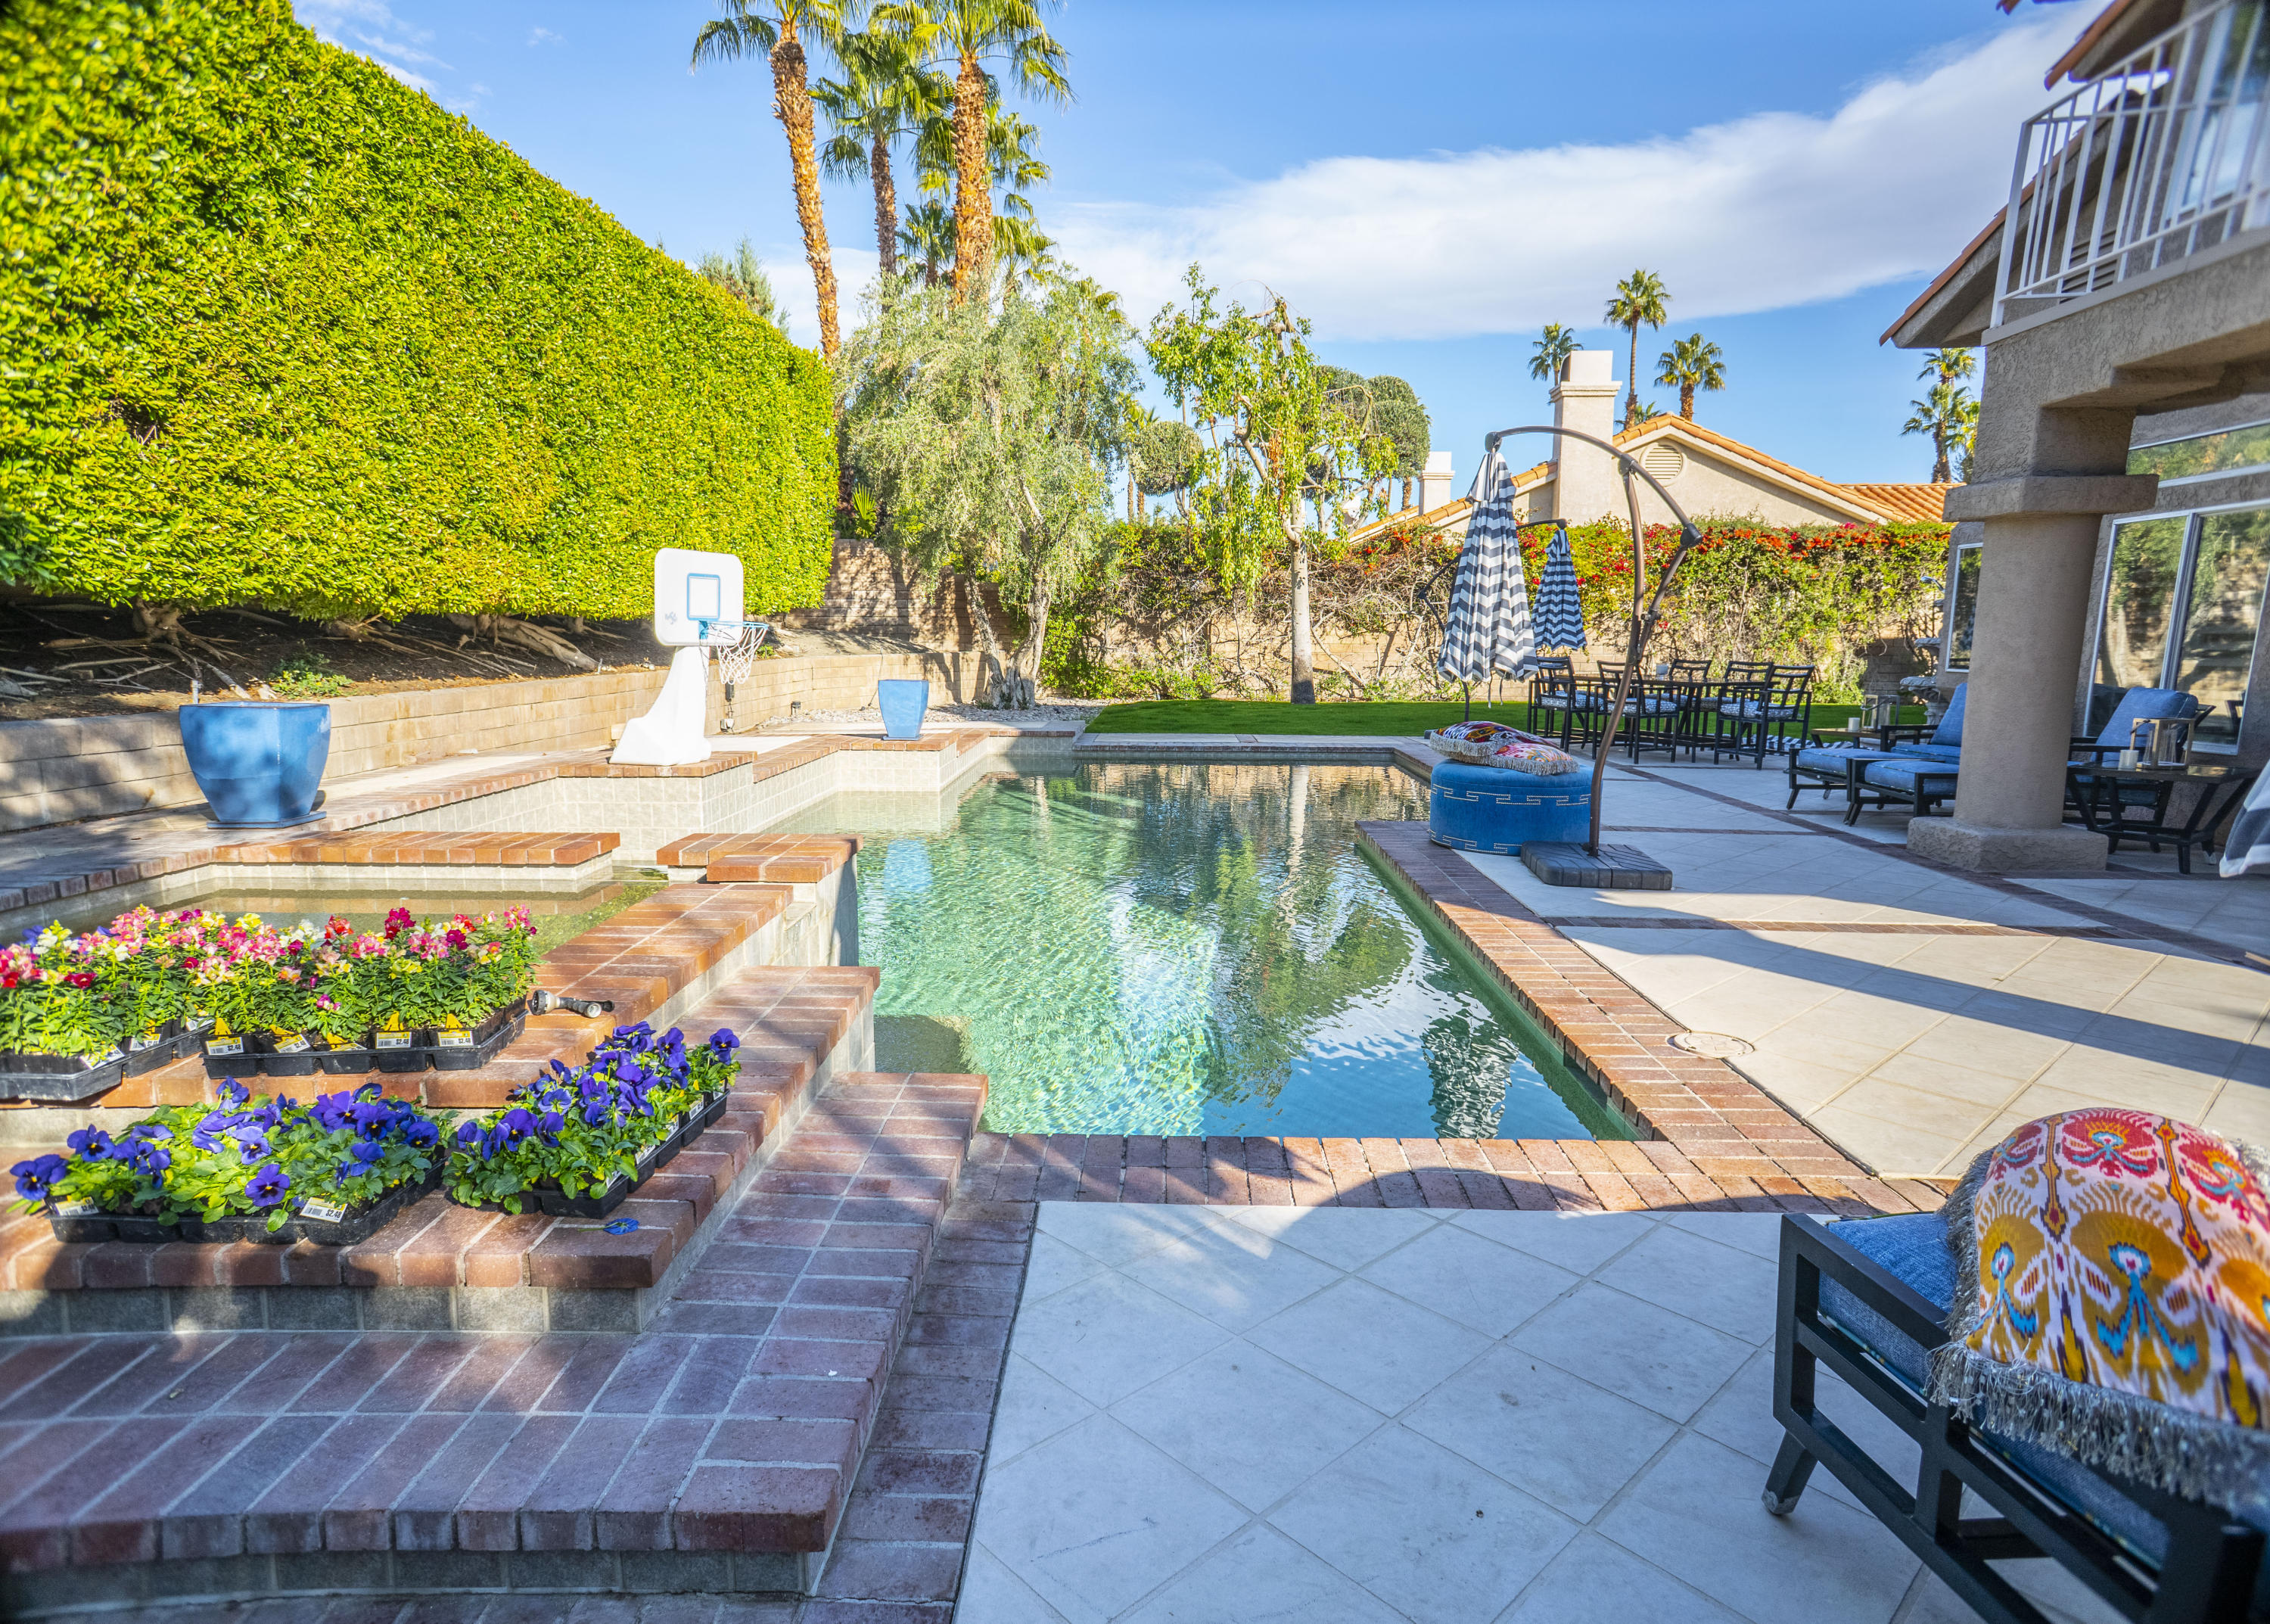 403 Cypress Point Drive, Palm Desert, California 92211, 4 Bedrooms Bedrooms, ,5 BathroomsBathrooms,Residential,For Sale,403 Cypress Point Drive,219036203